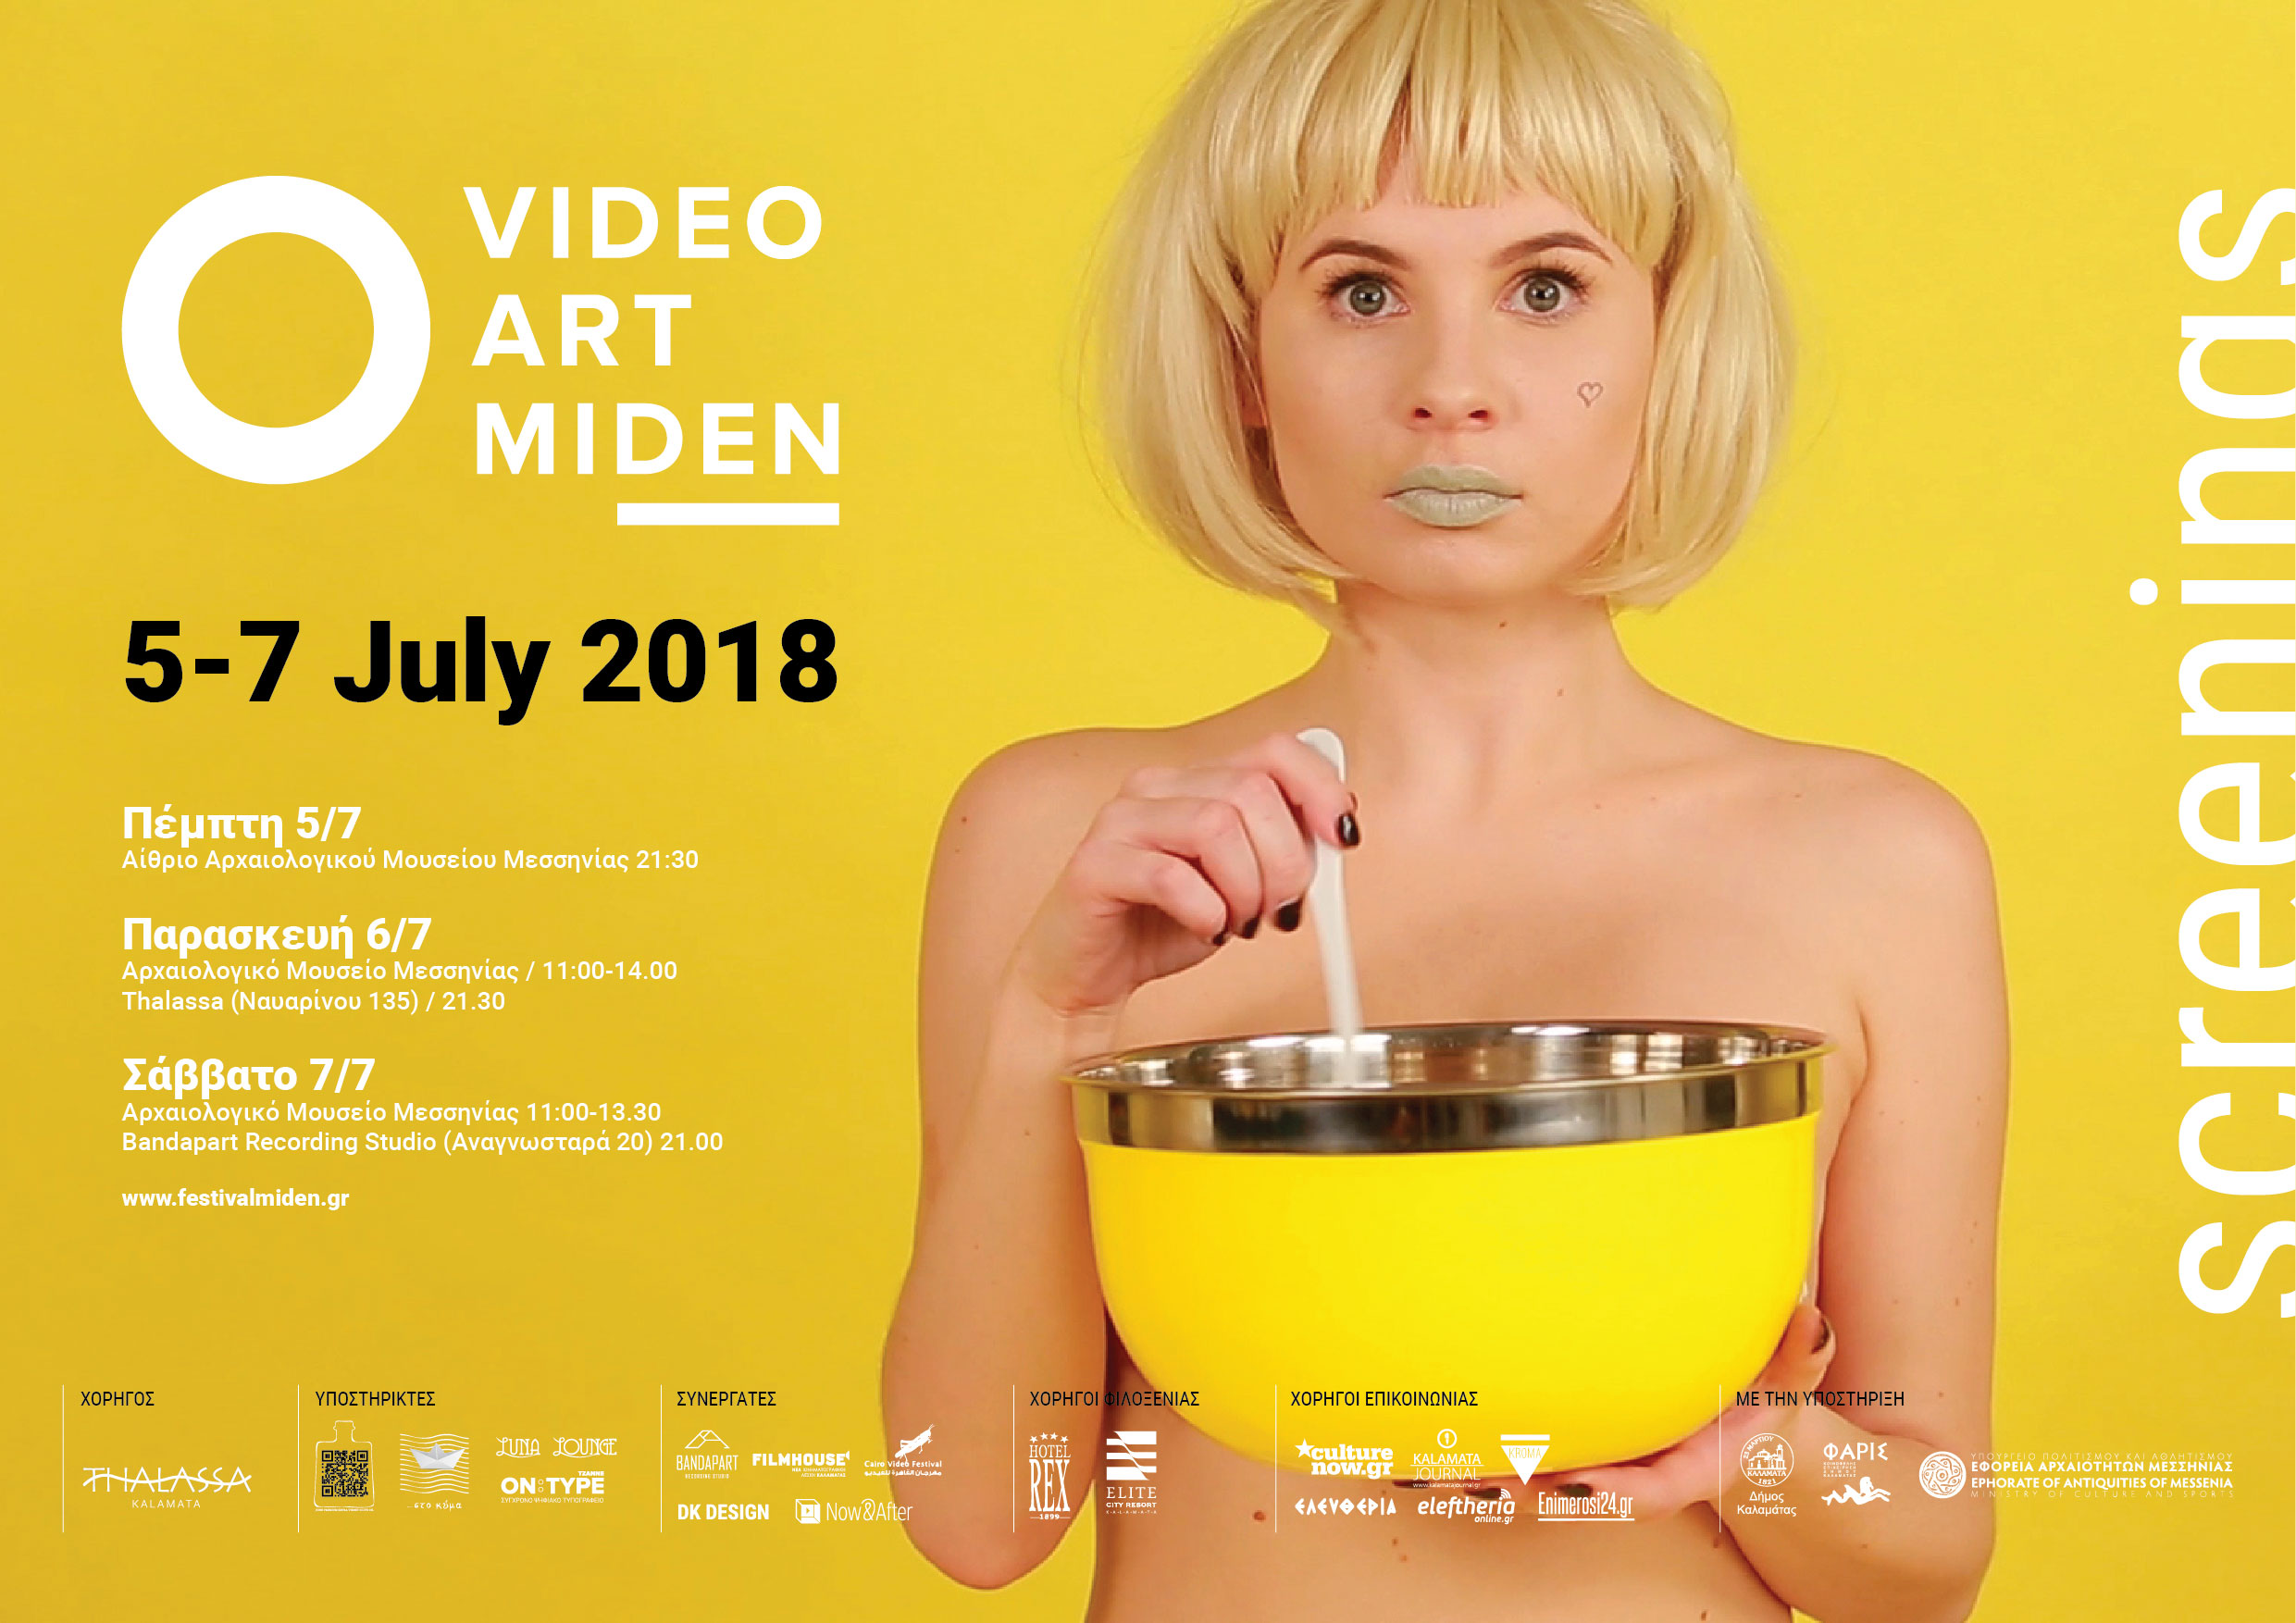 Video Art Miden, 2018, Greece